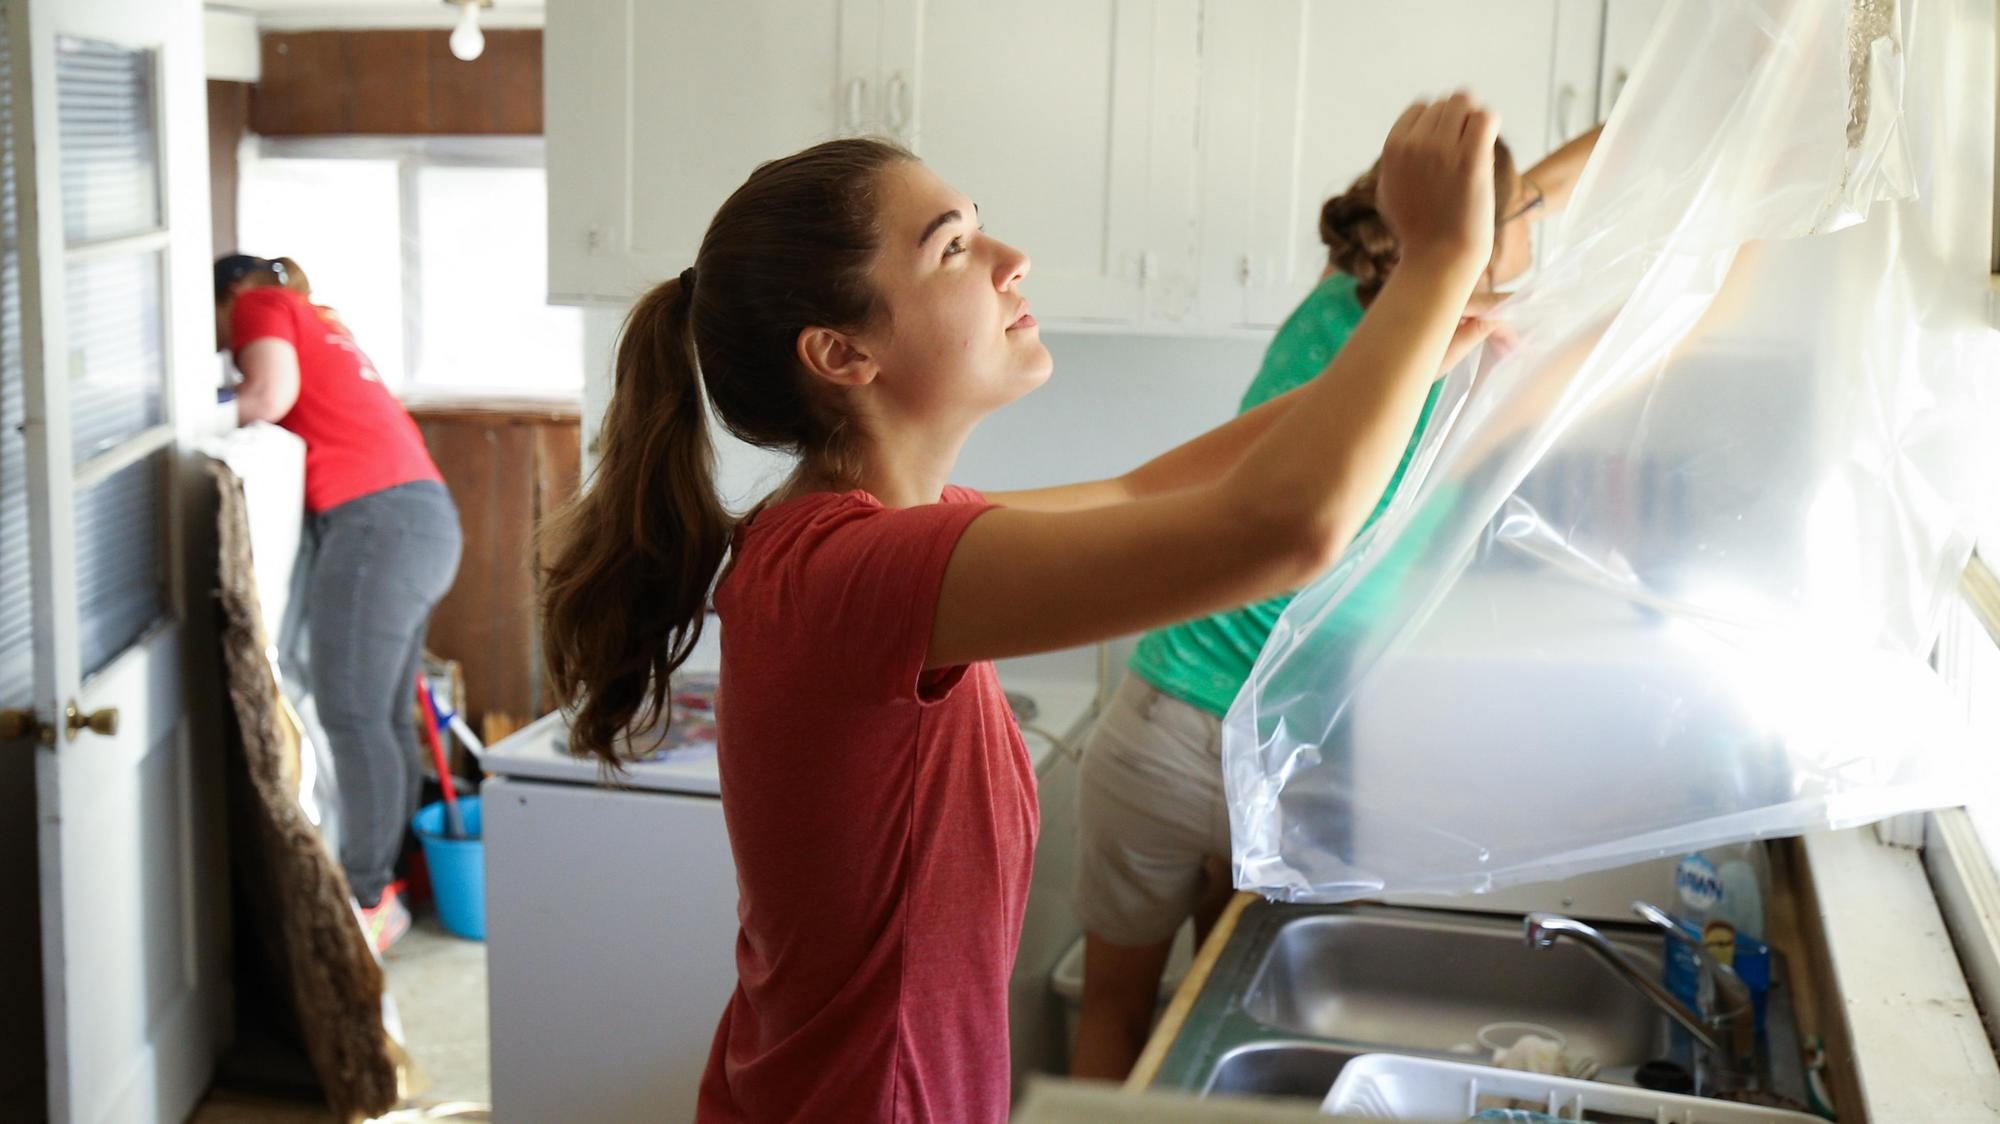 Volunteers with Furman's Community Conservation Corps work on weatherizing a home.